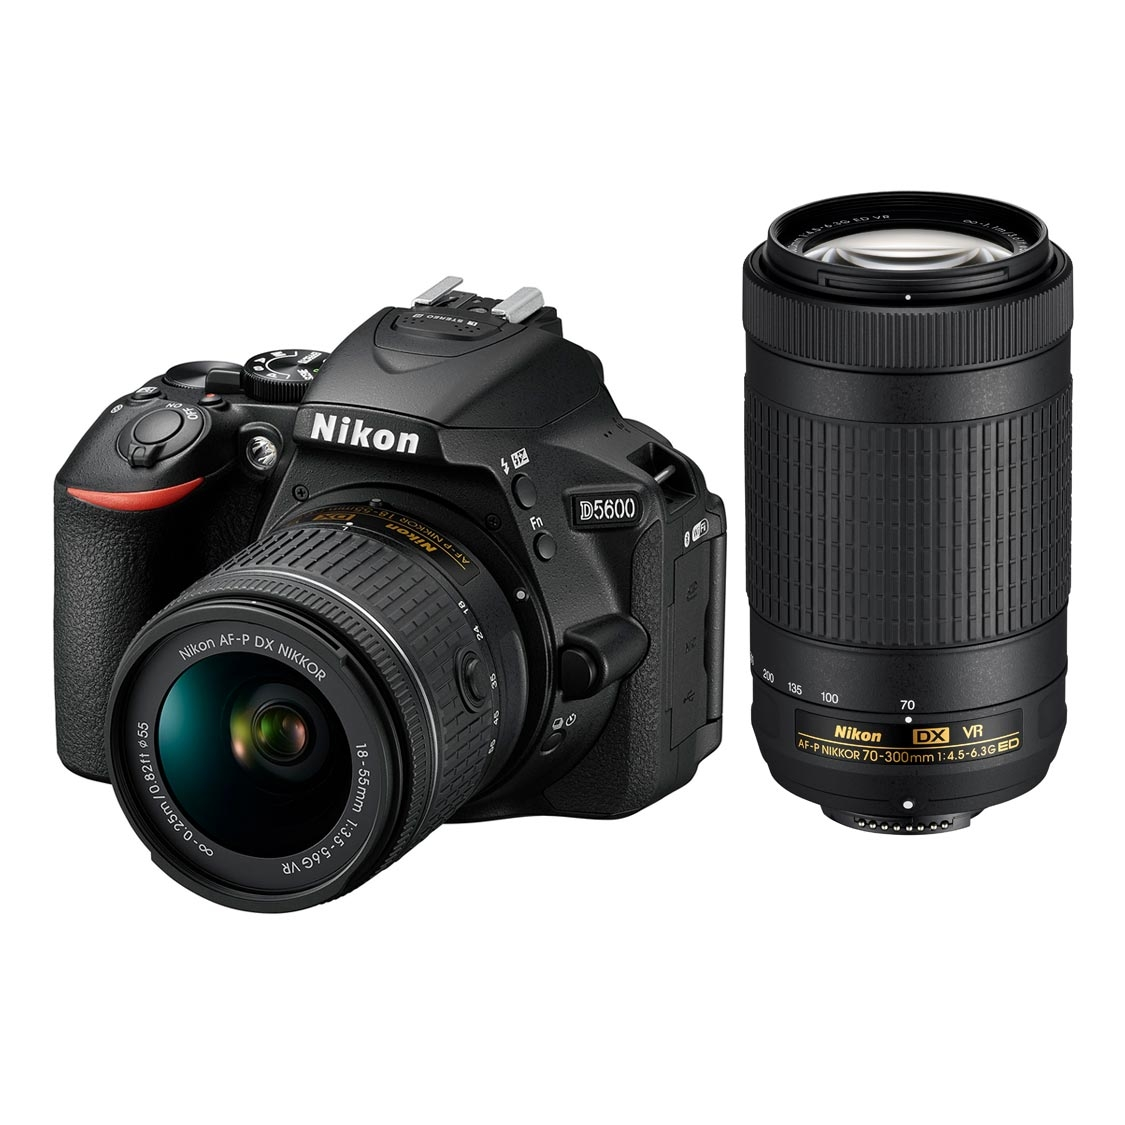 Nikon D5600 DSLR with 18-55mm and DX 70-300mm VR Lenses